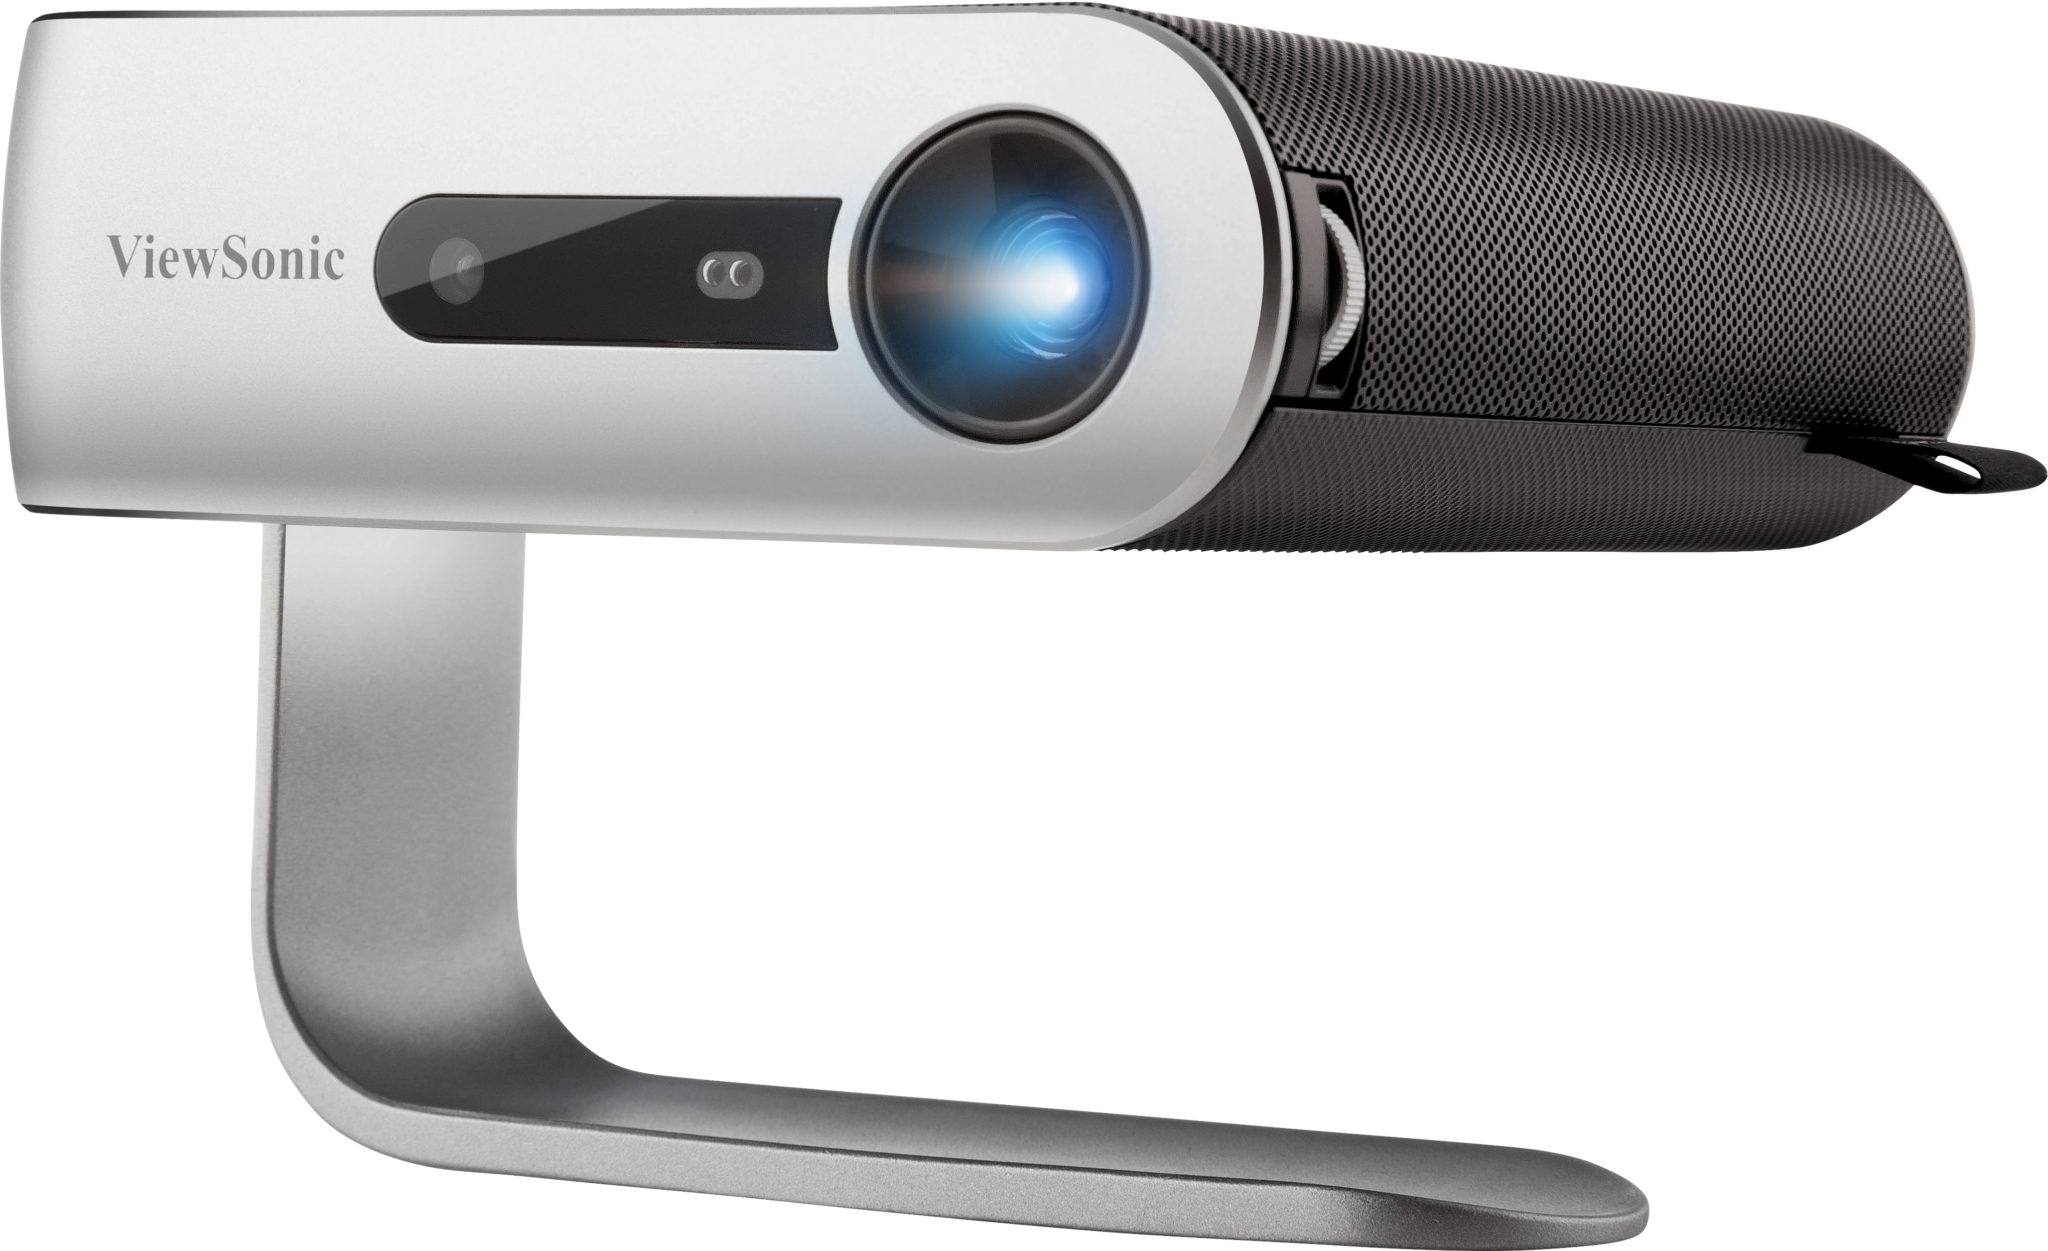 Viewsonic LED M1 projector